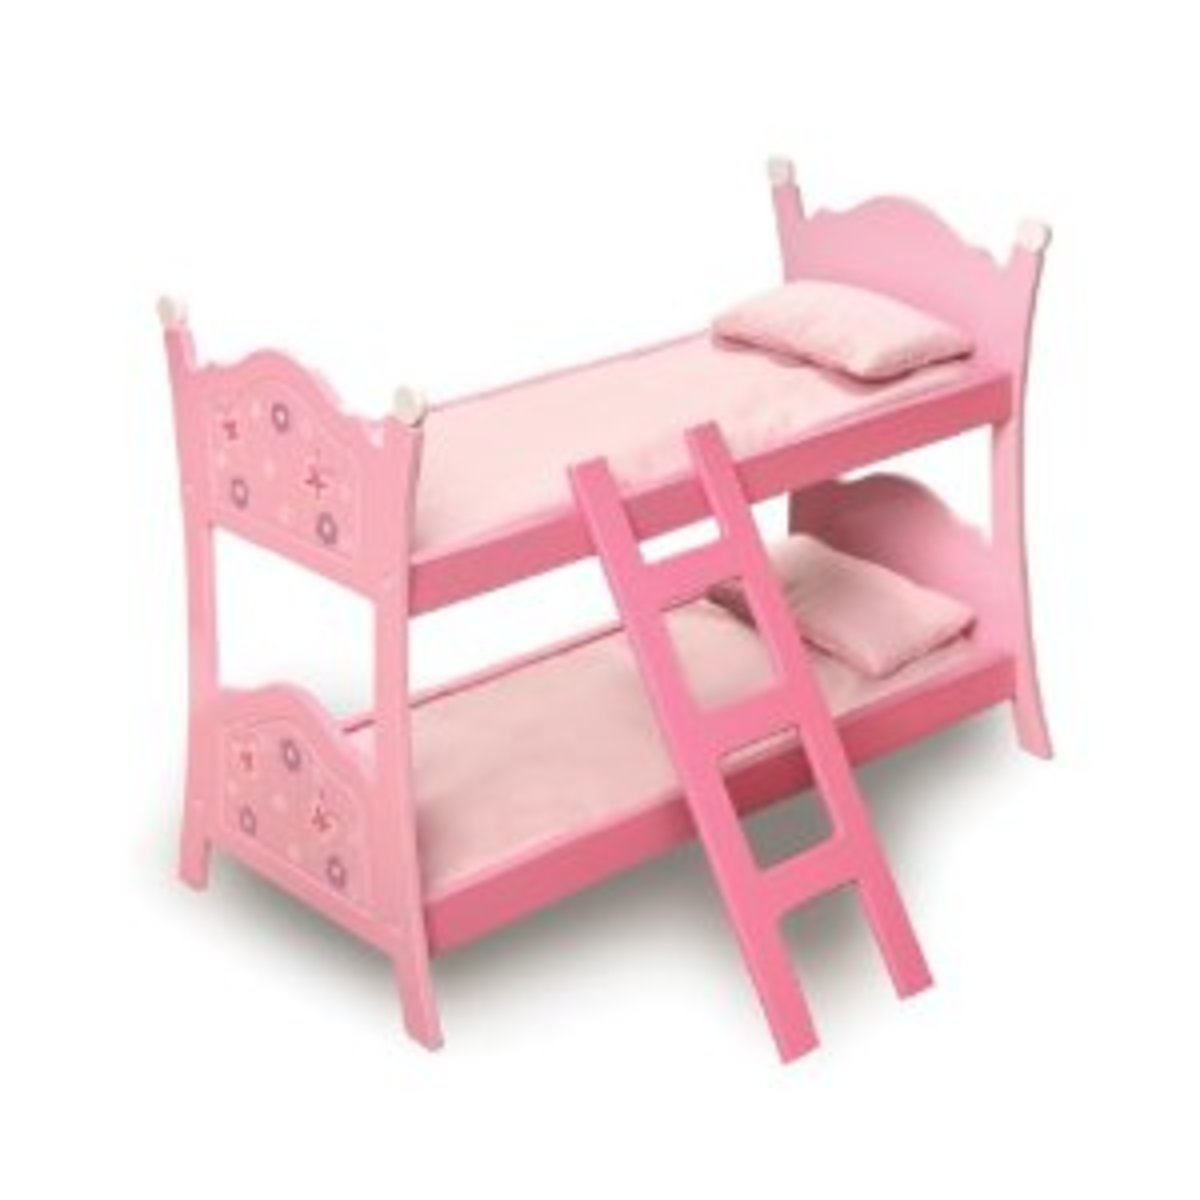 Don't pay a fortune at the AGD store, doll beds for less here!